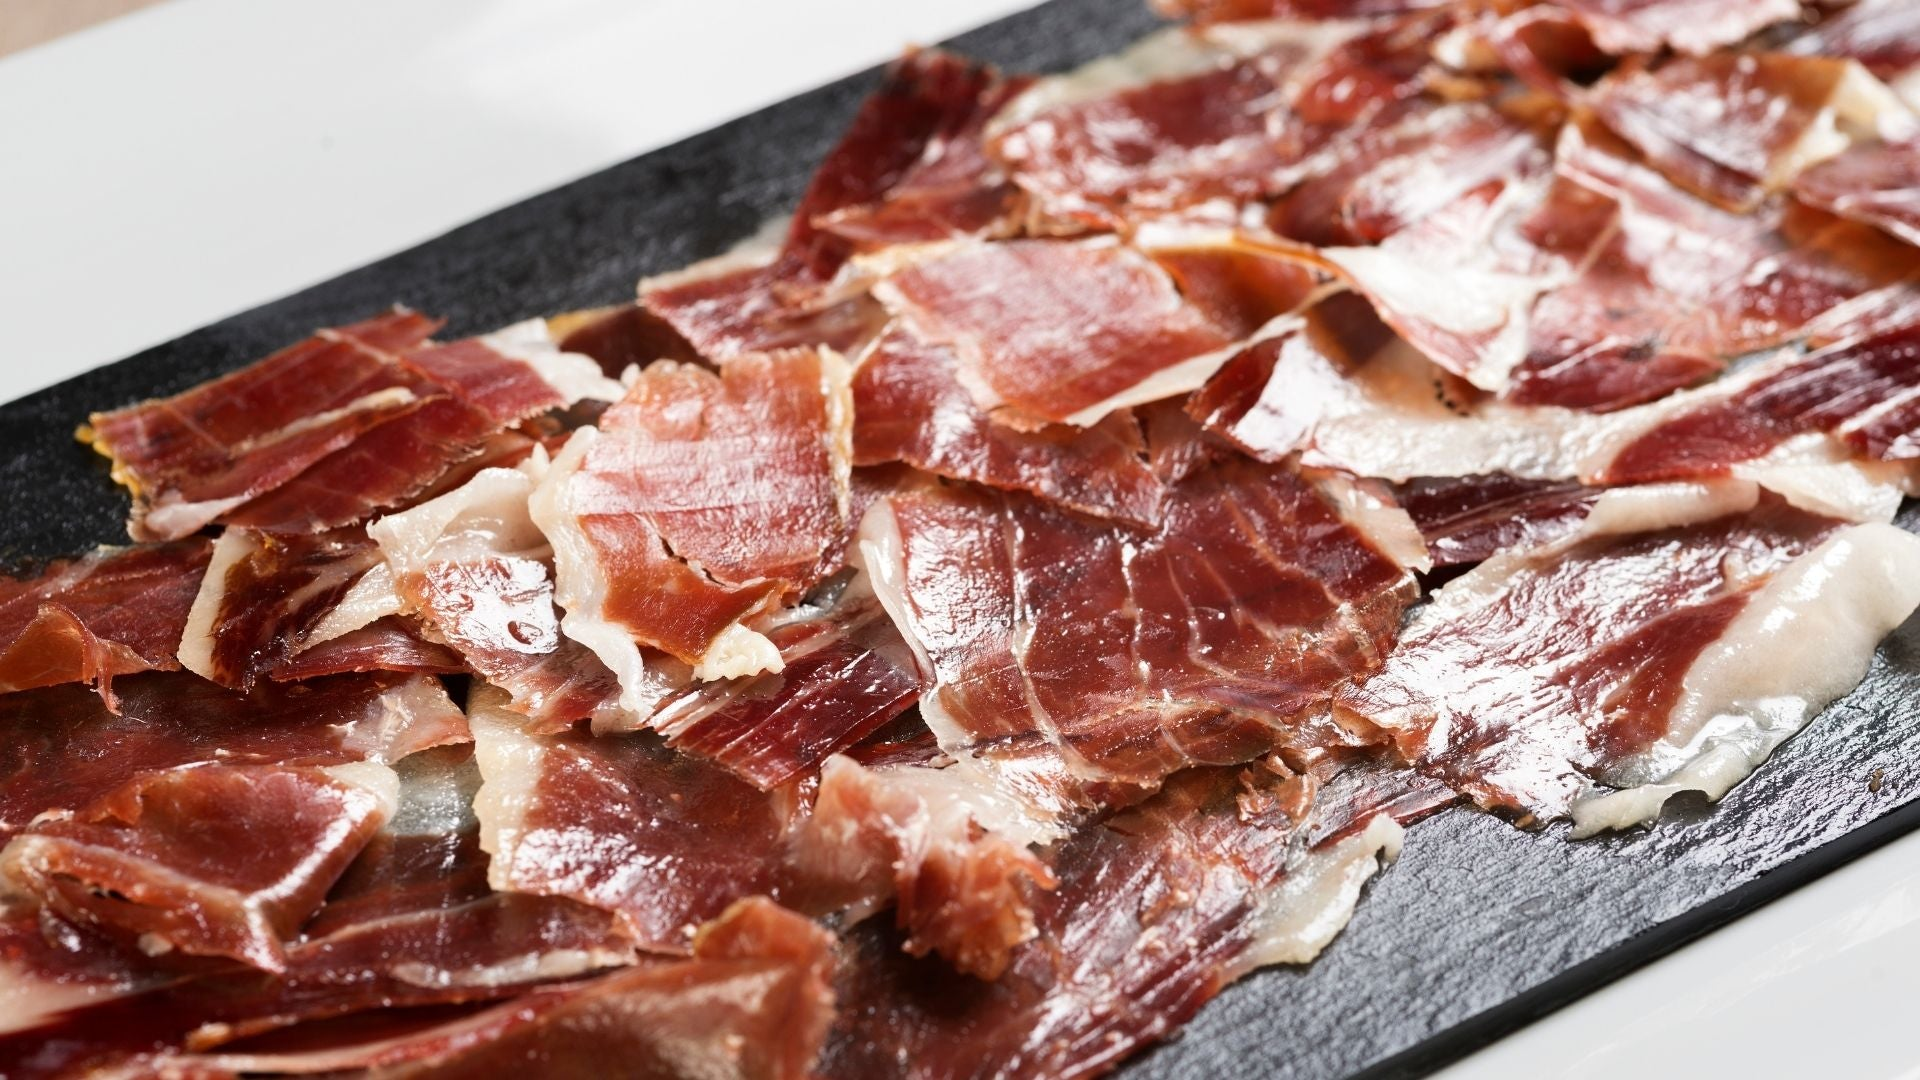 What Jamón should you choose: